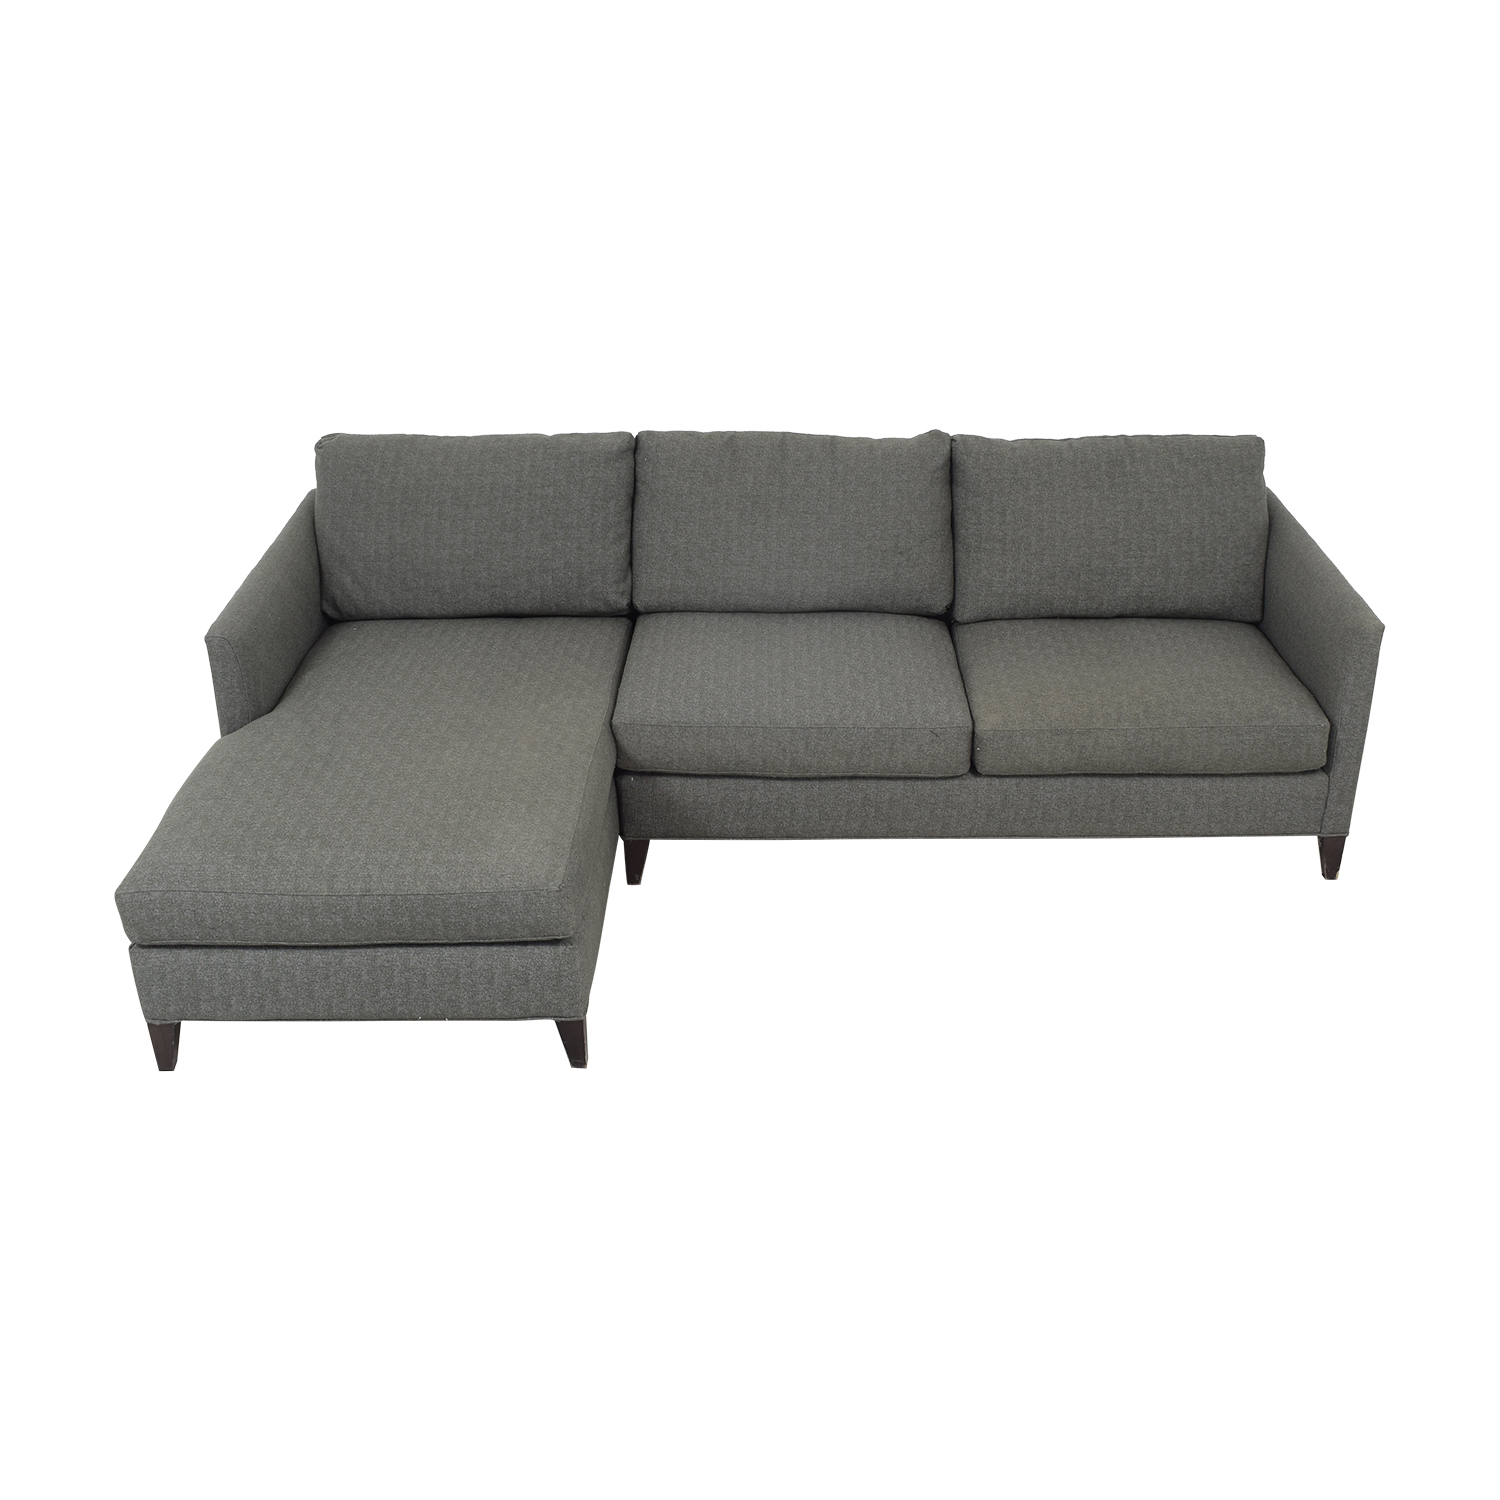 Crate & Barrel Crate & Barrel Chaise Sectional Sofa pa